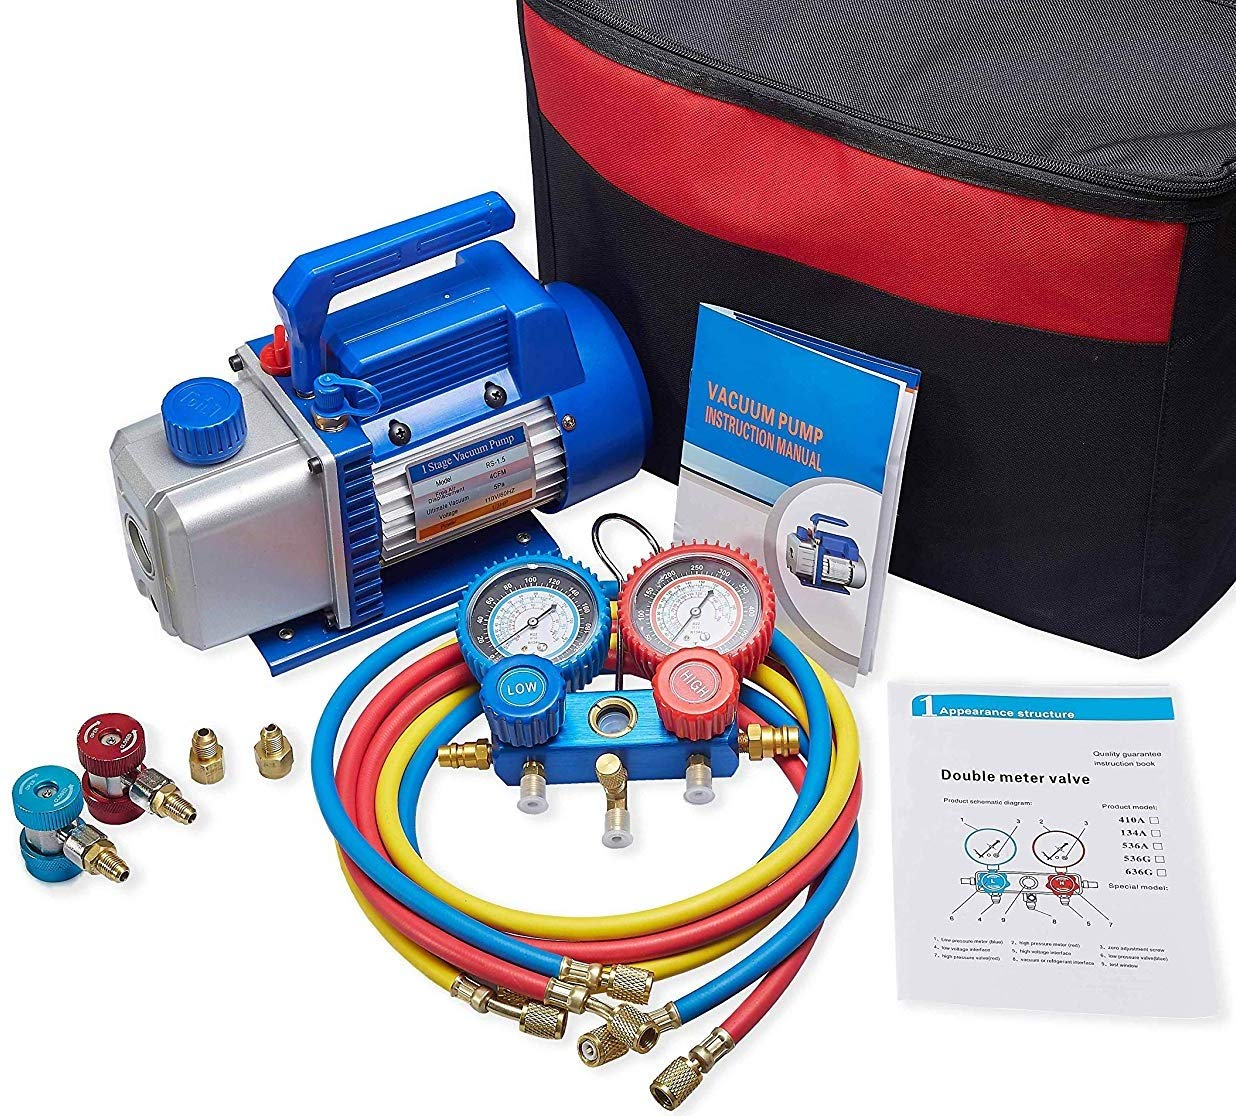 NewPositon 4CFM Air Vacuum Pump HVAC A/C Refrigeration Kit AC Manifold Gauge Set w/Leak Detector